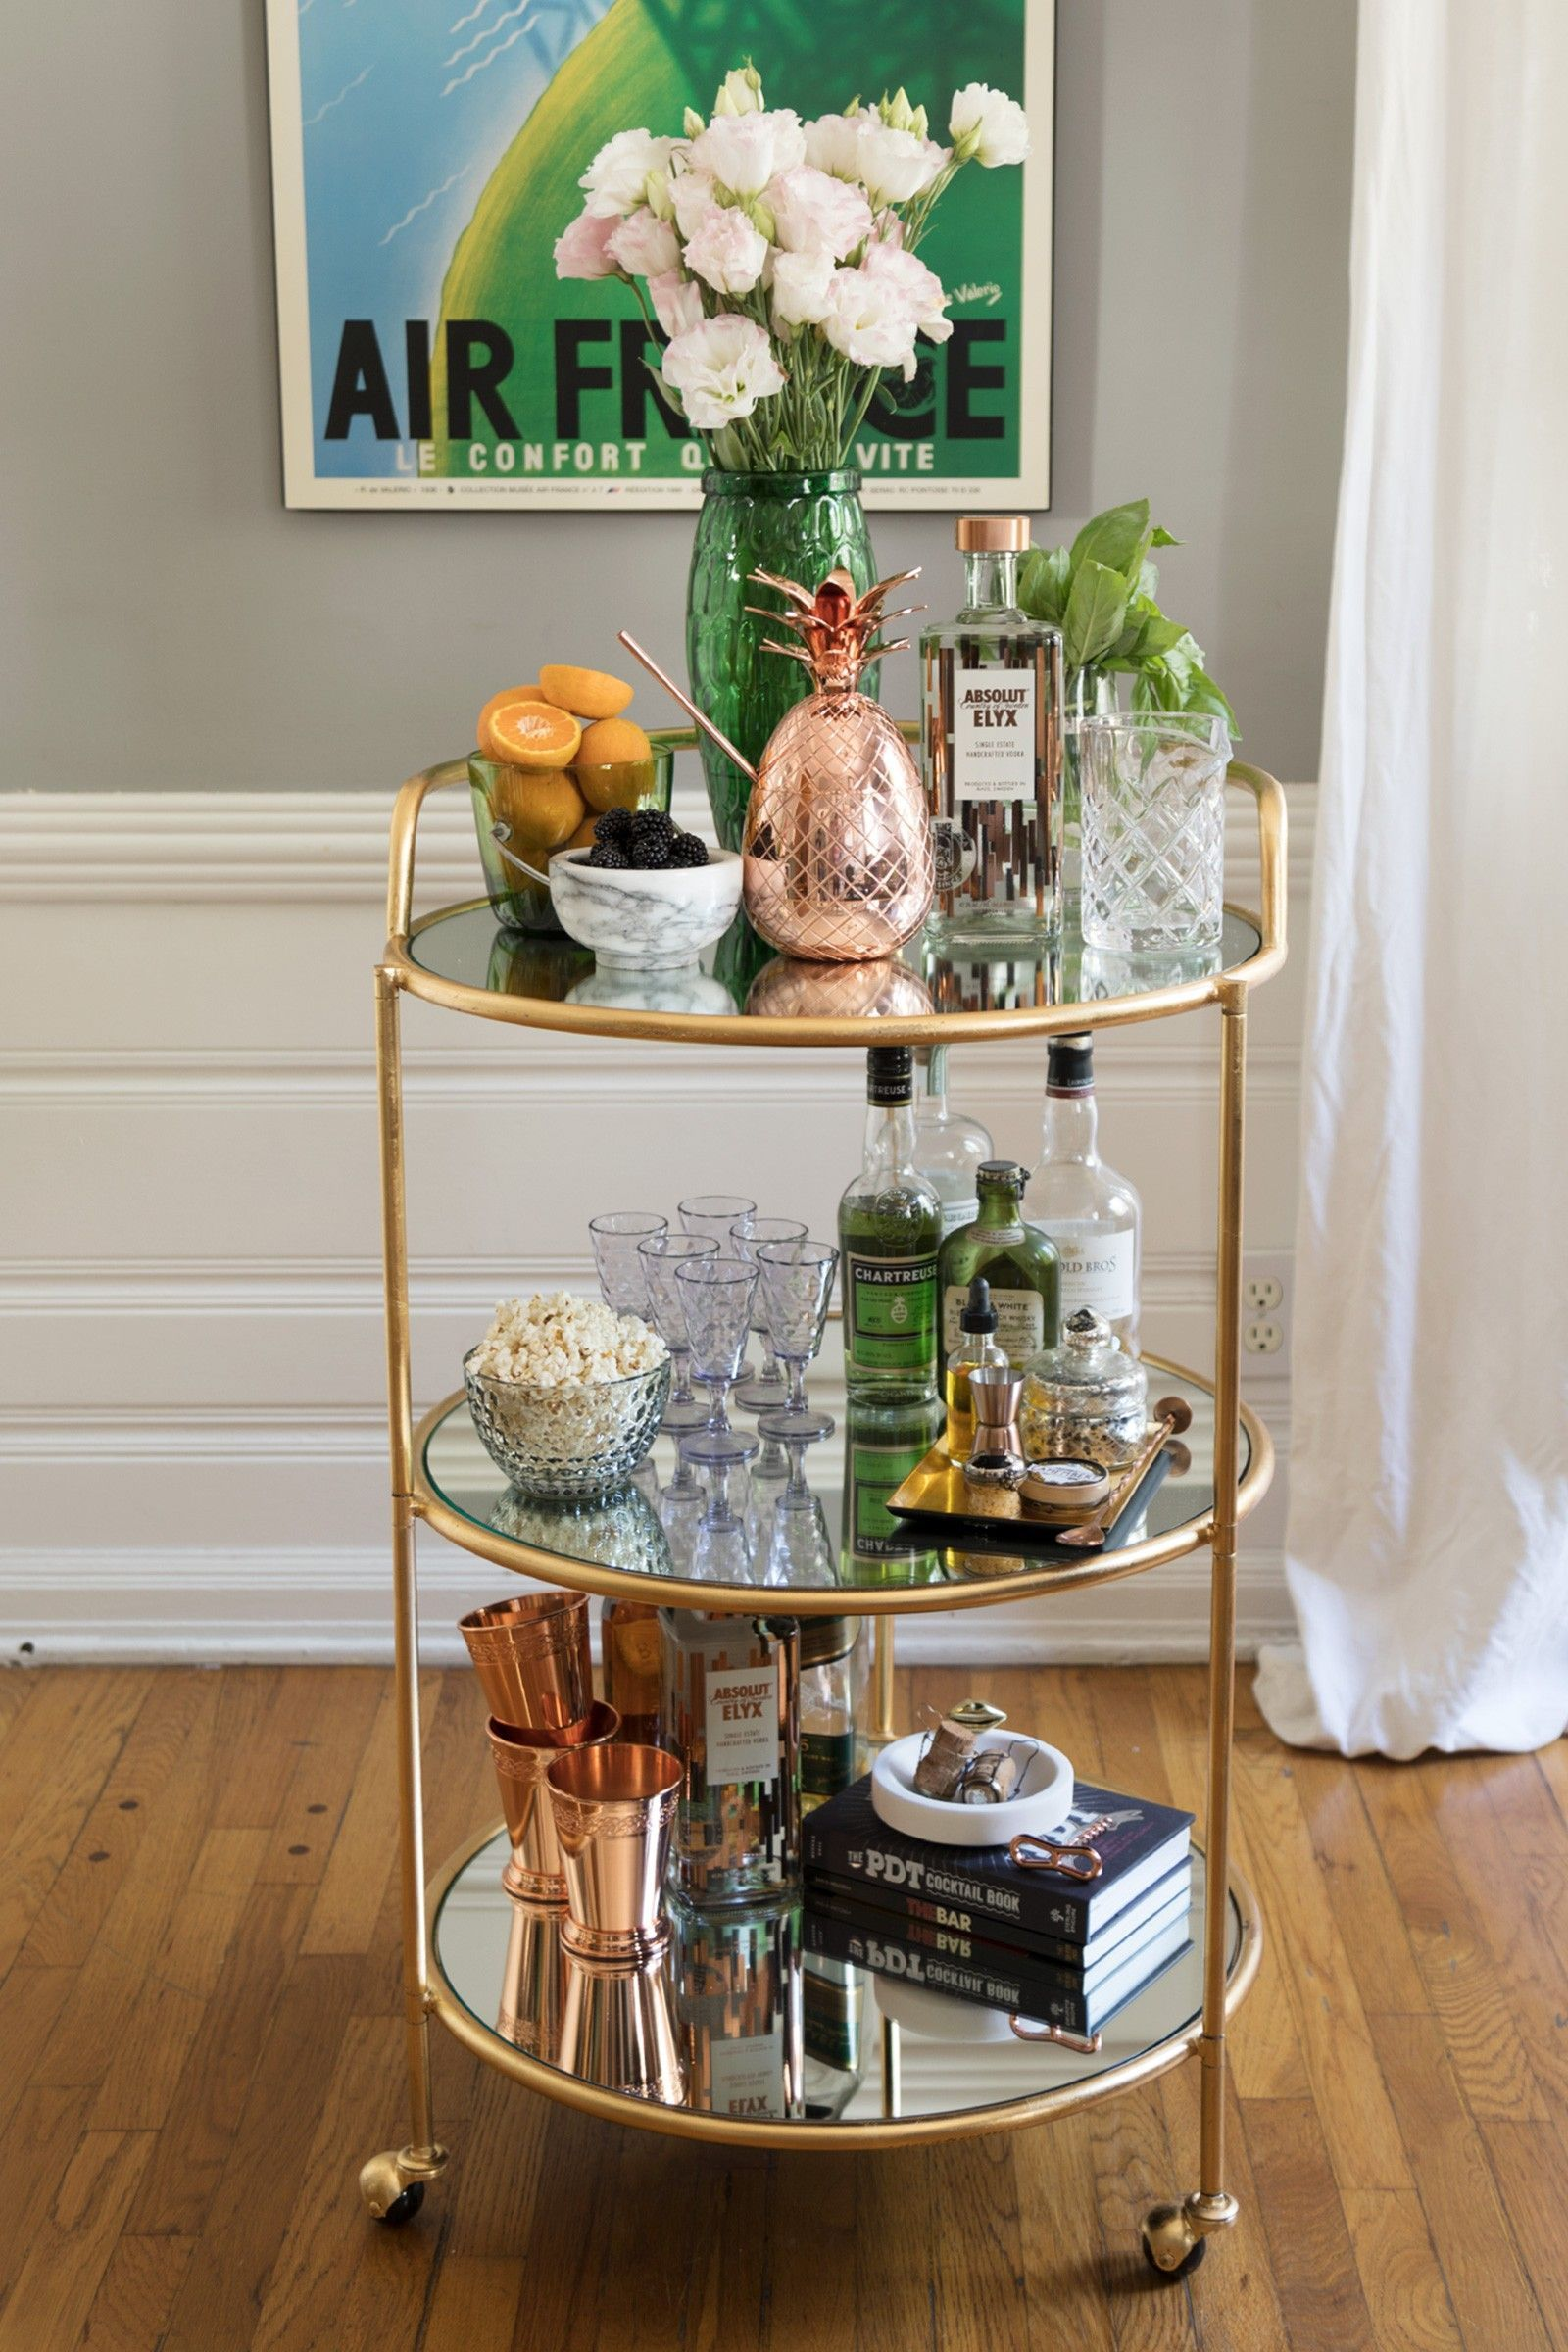 Spring S Around The Corner Whether A Coffee A Cocktail Or Mocktail Just Like Breaking Out The Fancy Silver Or Co Home Bar Decor Bar Cart Decor Gold Bar Cart